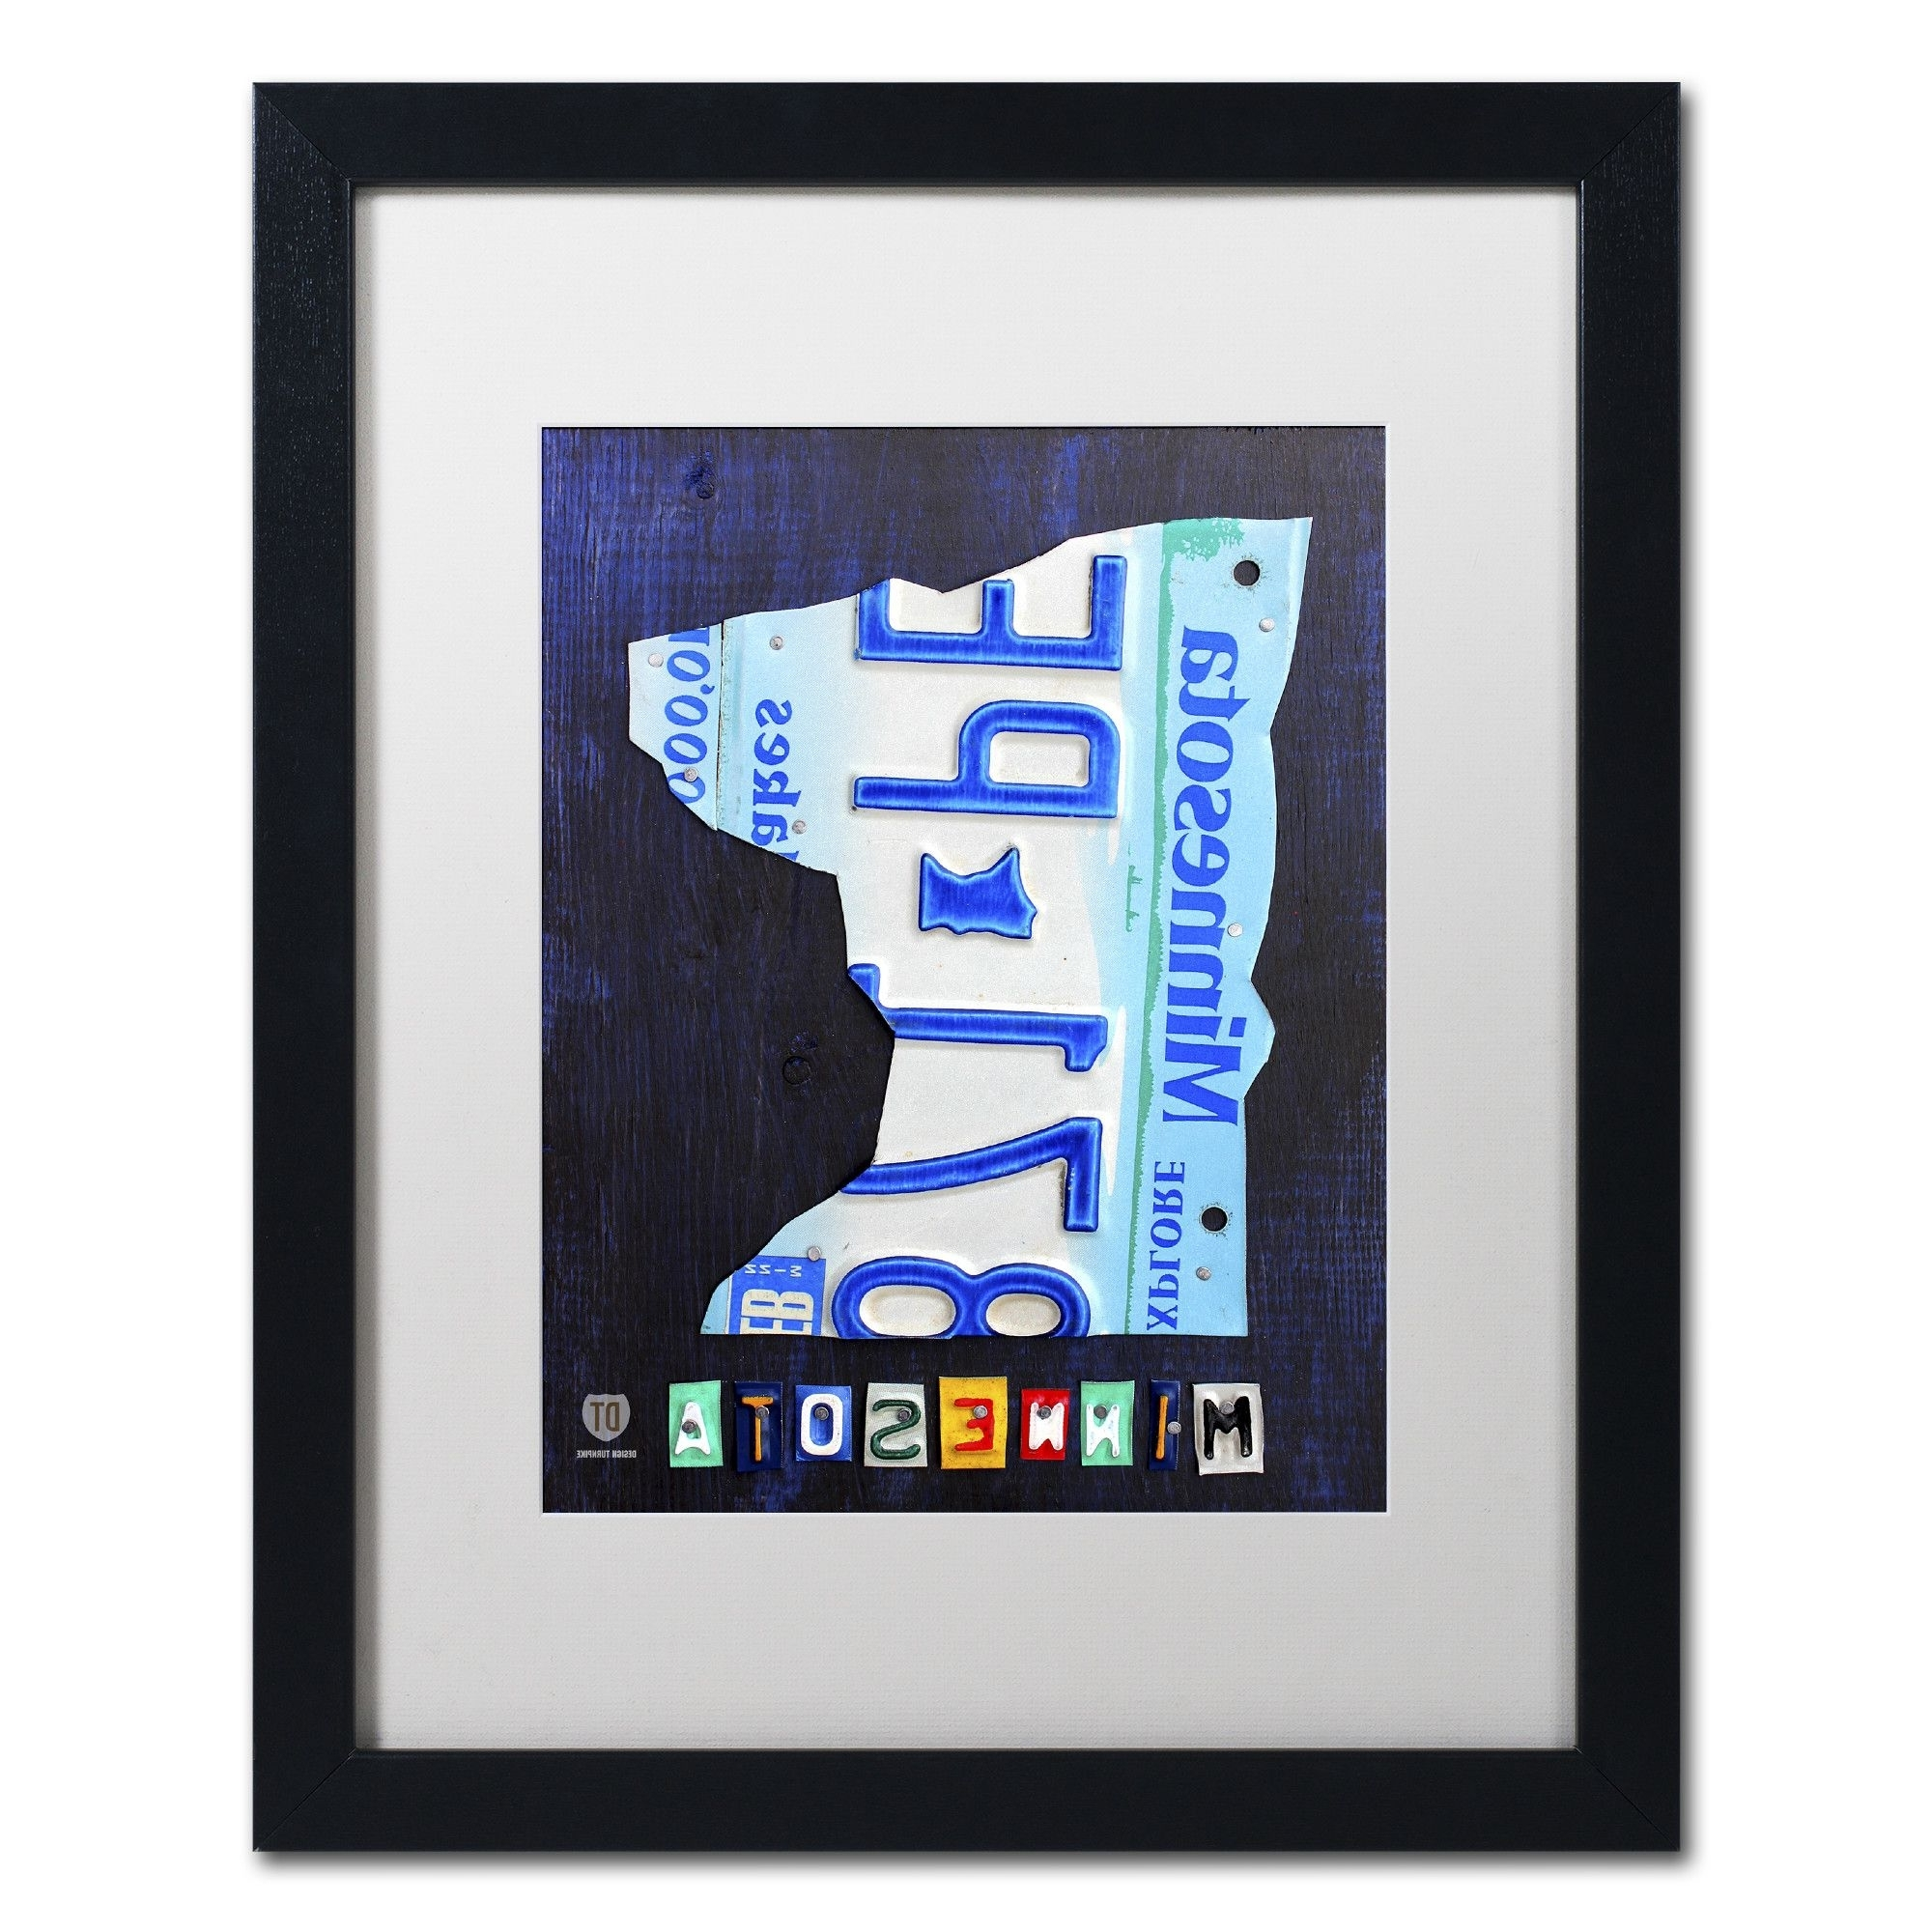 Well Known Minnesota License Plate Mapdesign Turnpike Framed Graphic Art With Regard To License Plate Map Wall Art (View 20 of 20)